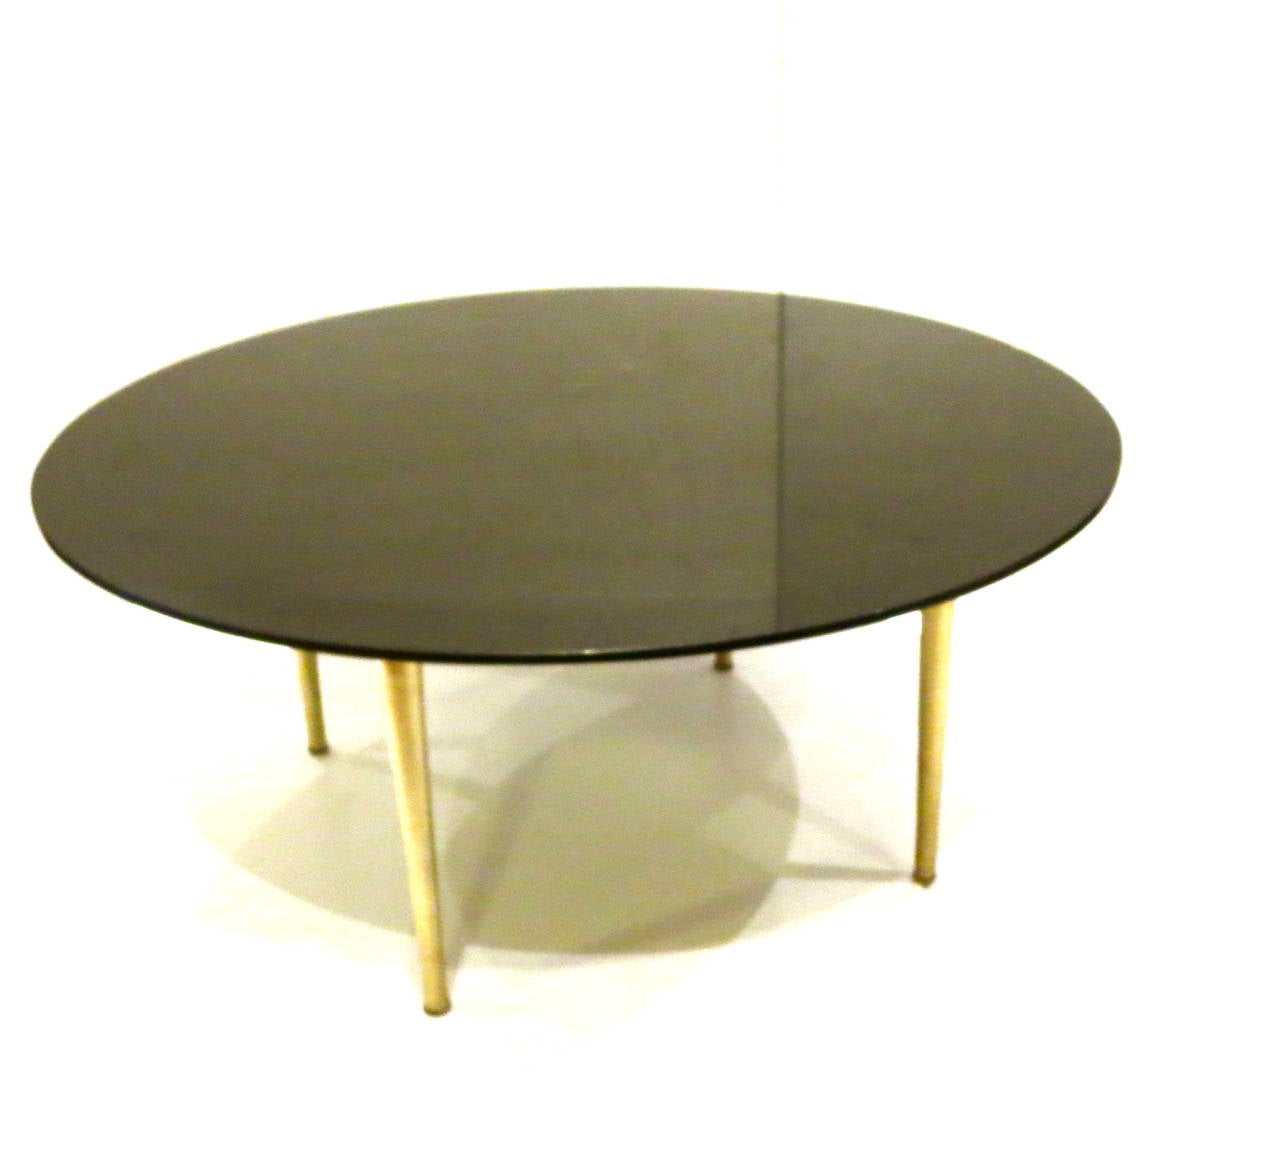 American modern polished black granite coffee table with brushed aluminum legs at 1stdibs Aluminum coffee table legs